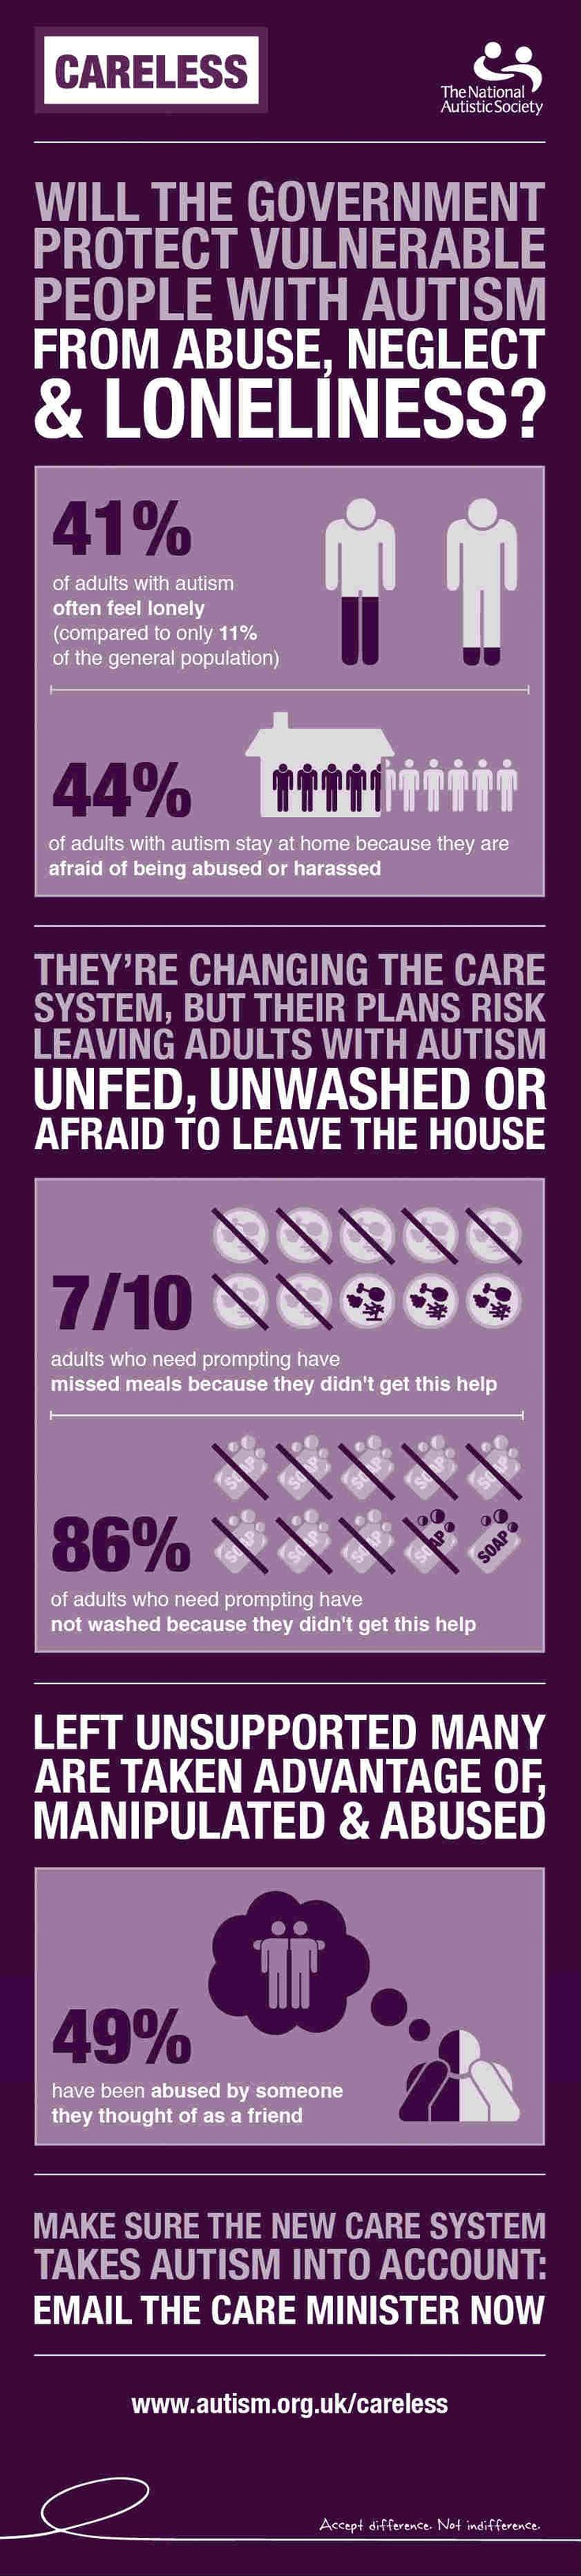 National Autistic Society's Campaign. Please repin or retweet! #Autism #Aspergers